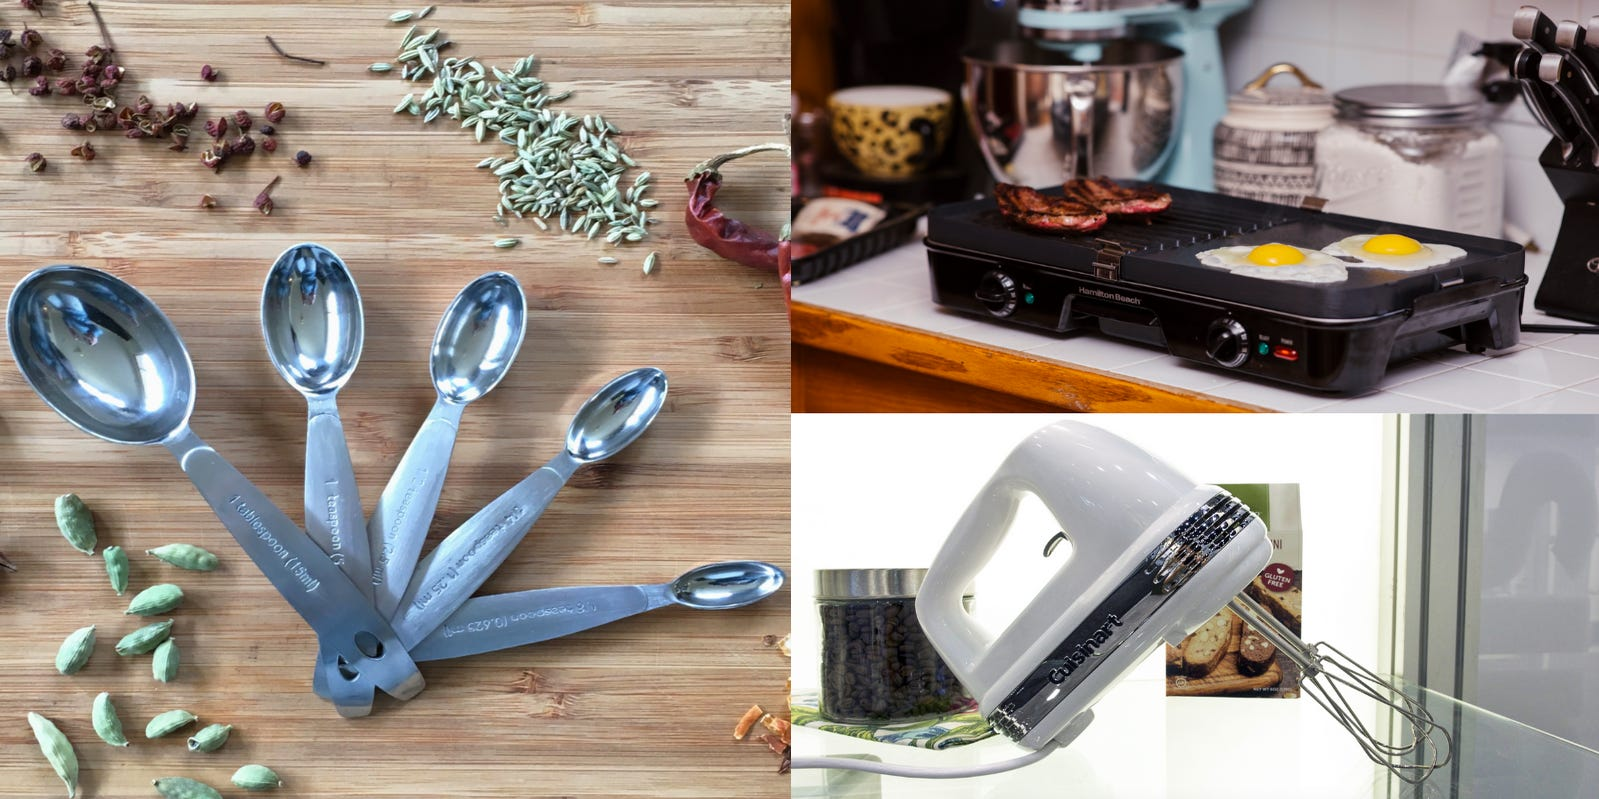 The 12 best kitchen gadgets of 12 Instant Pot, KitchenAid and more